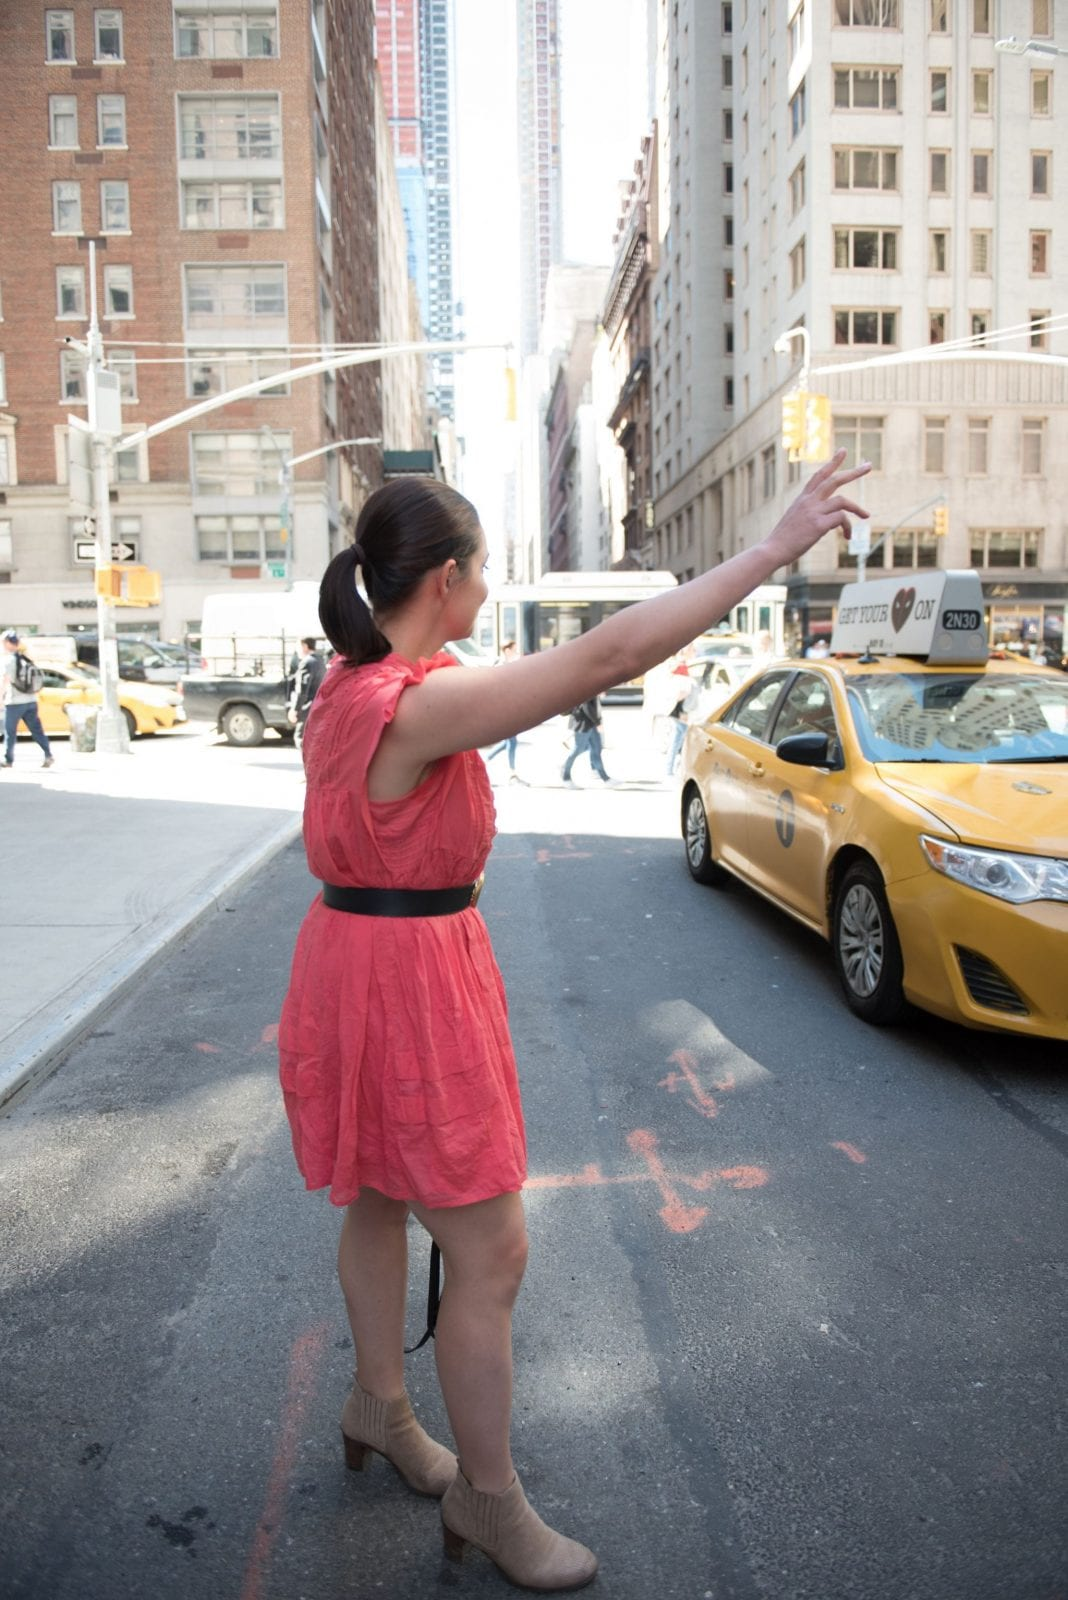 This is me attempting to hail a cab in New York City.